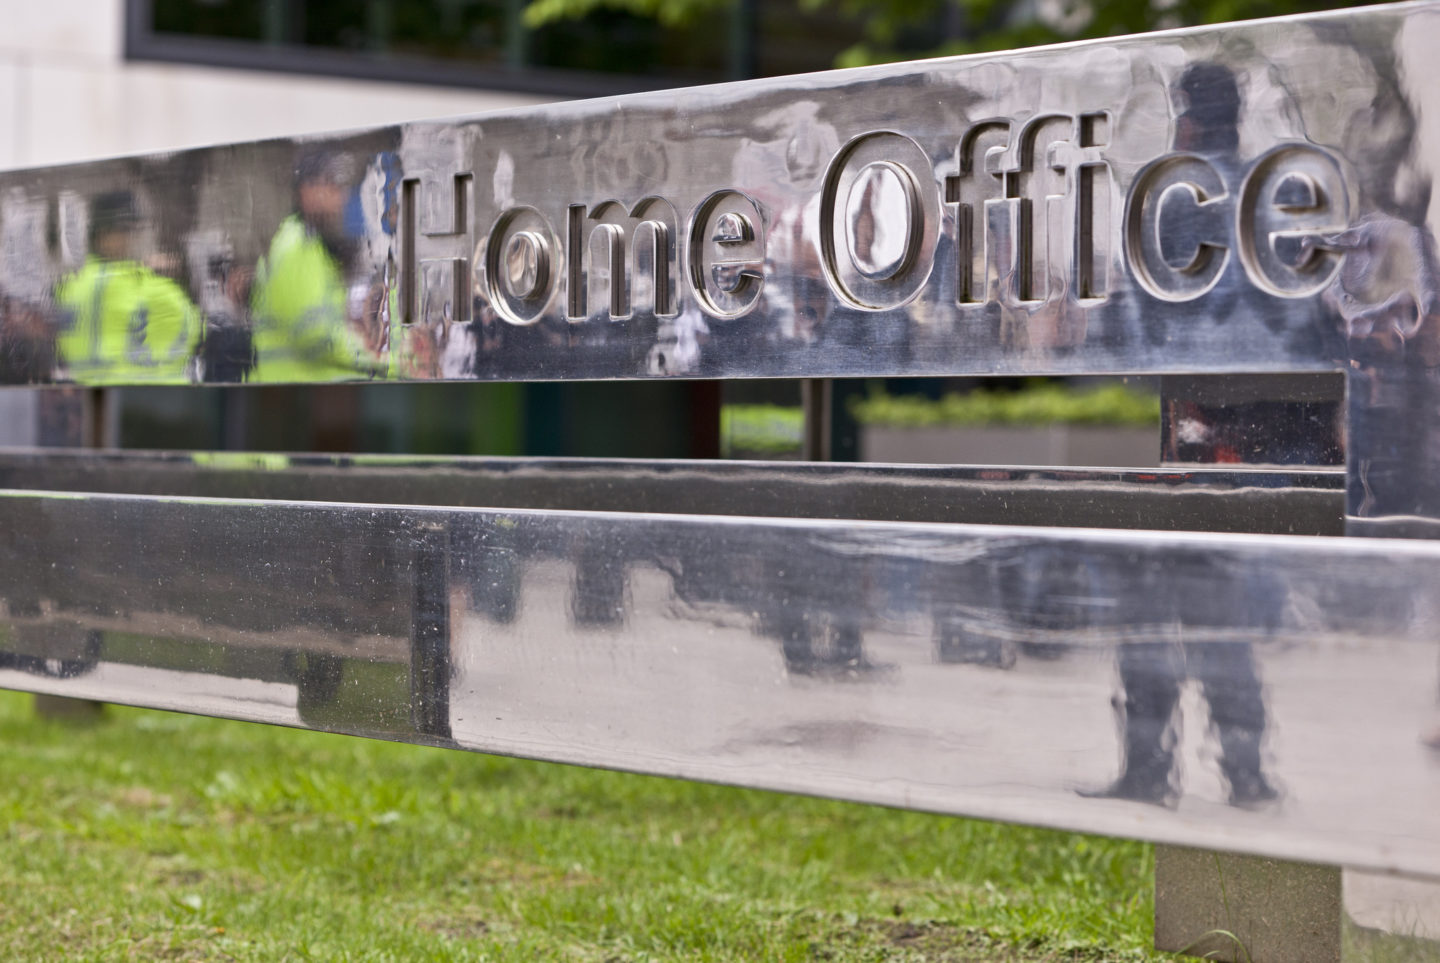 Home Office 'utterly failing' in treatment of detained immigrants, say MPs 9